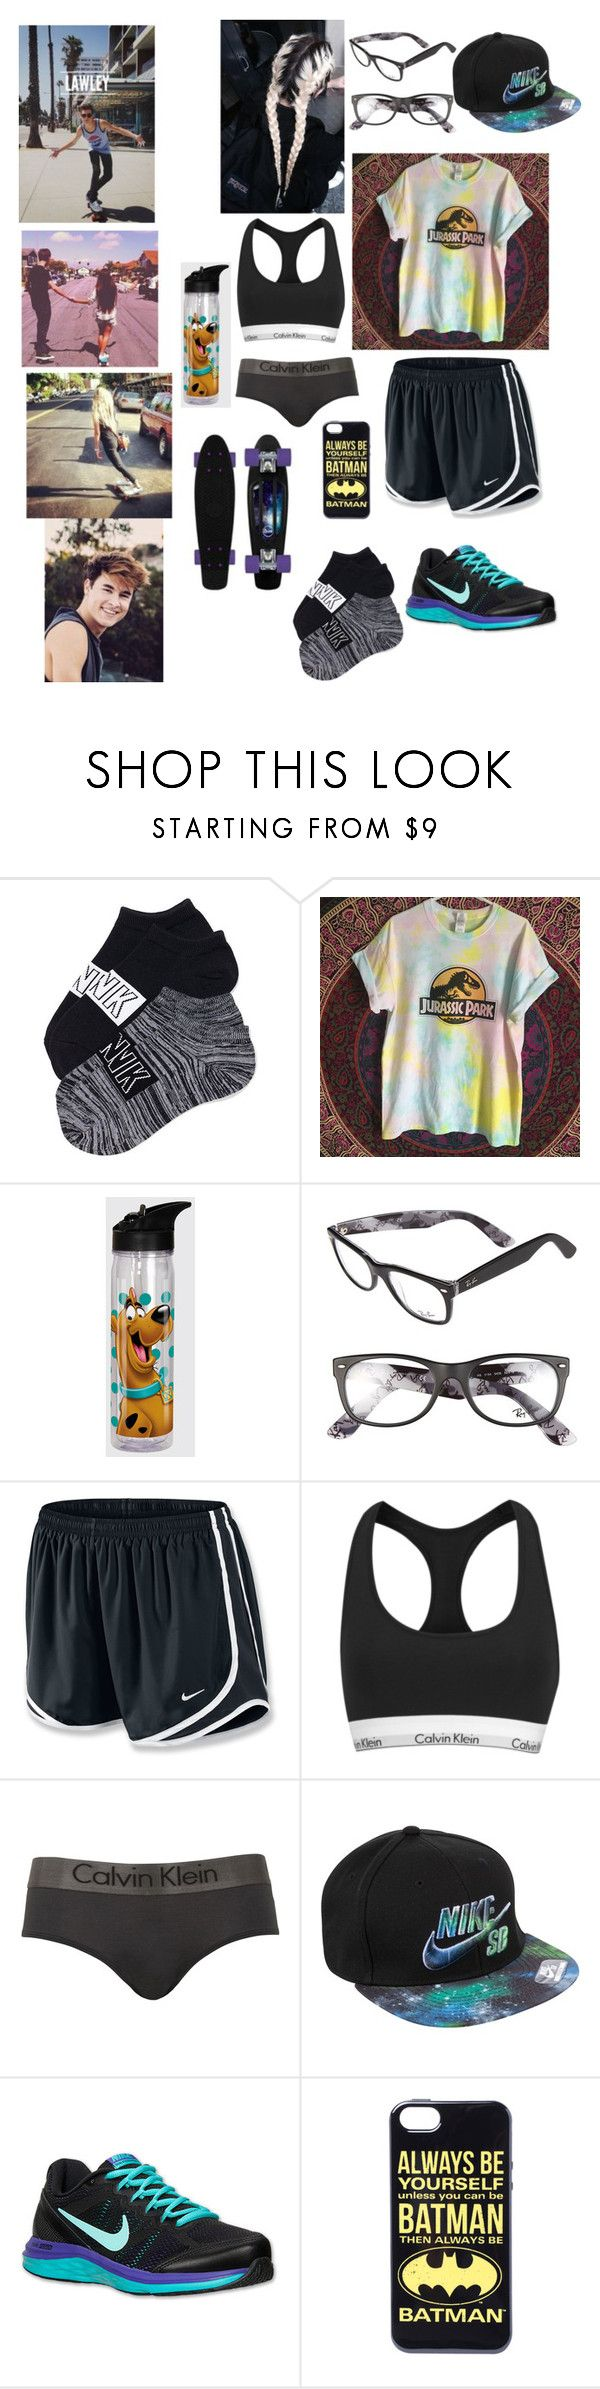 """""""Penny/skate boarding with kian #15"""" by julianiall1 ❤ liked on Polyvore featuring Ray-Ban, NIKE, Calvin Klein, women's clothing, women, female, woman, misses and juniors"""